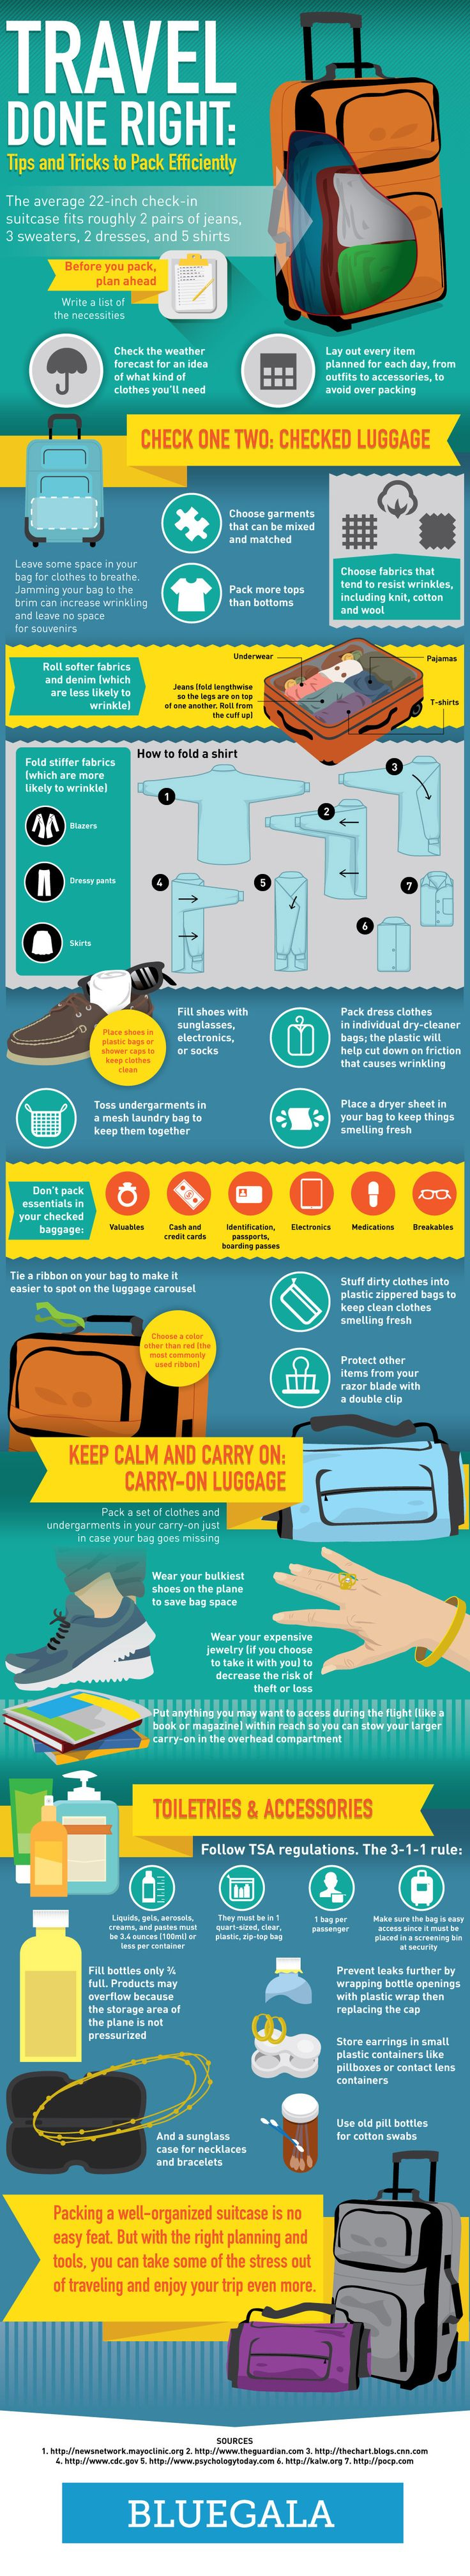 Travel Done Right: Tips And Tricks To Pack Efficiently #infographic #Travel #Packing